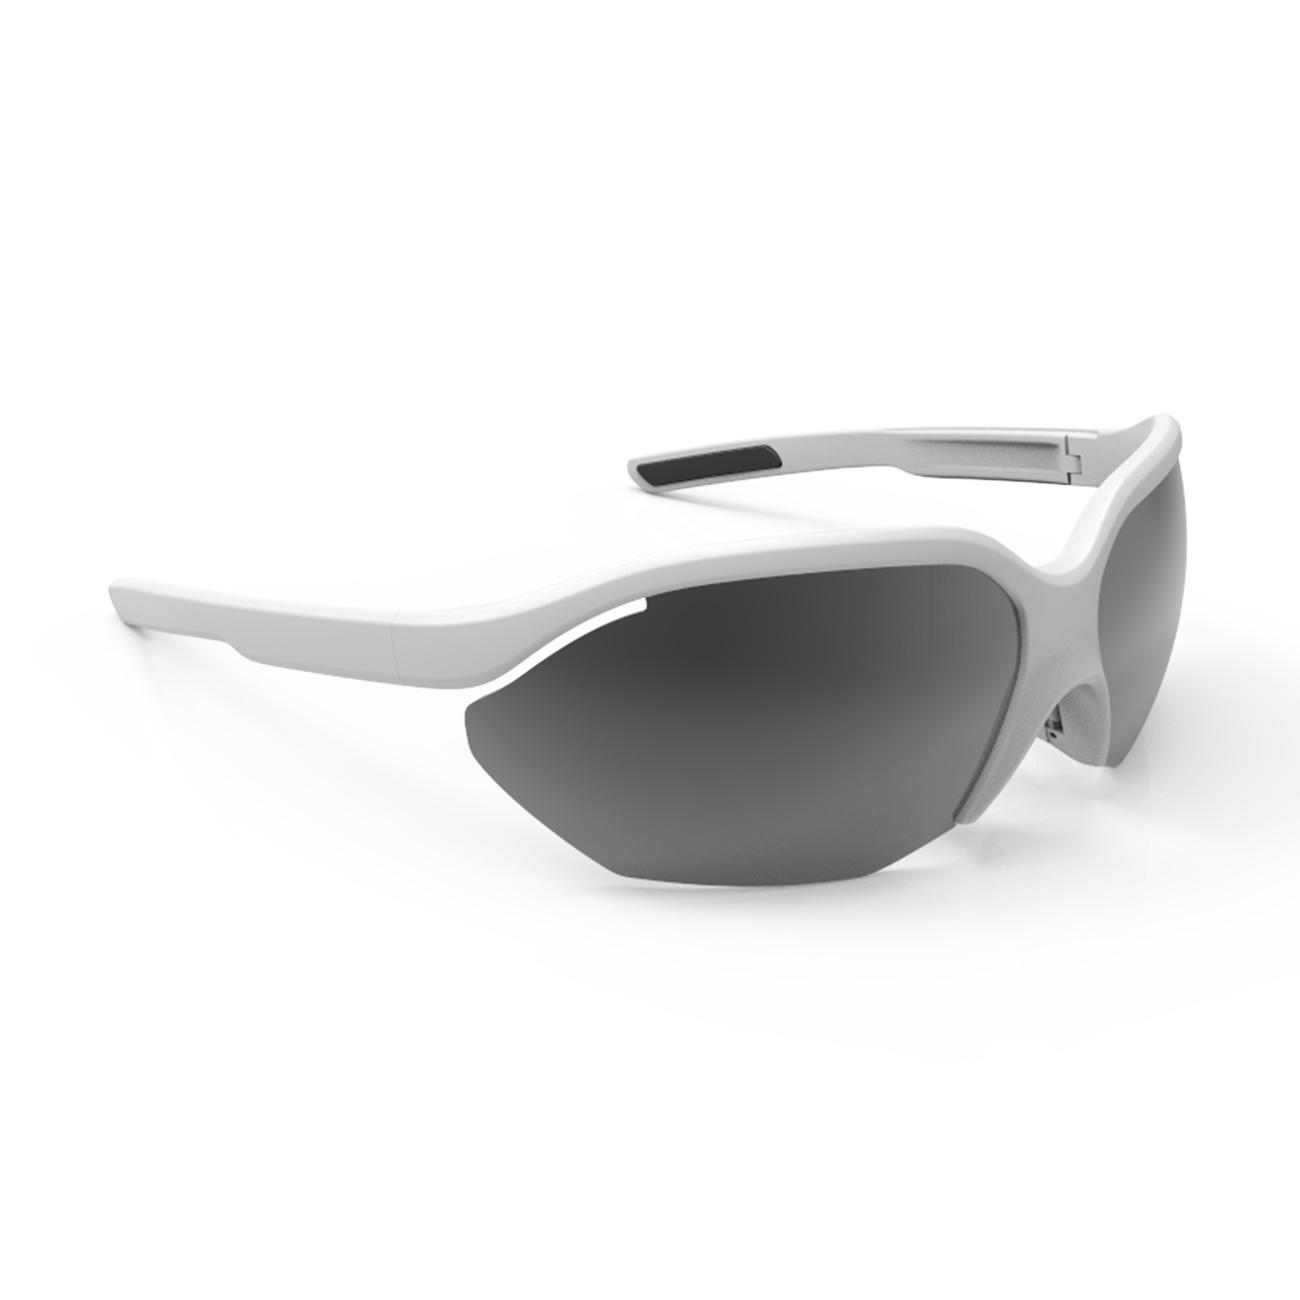 Afbeelding Briko Fiets zonnebril unisex Wit - Galaxy 2 Lenses Off White-SM3Y1